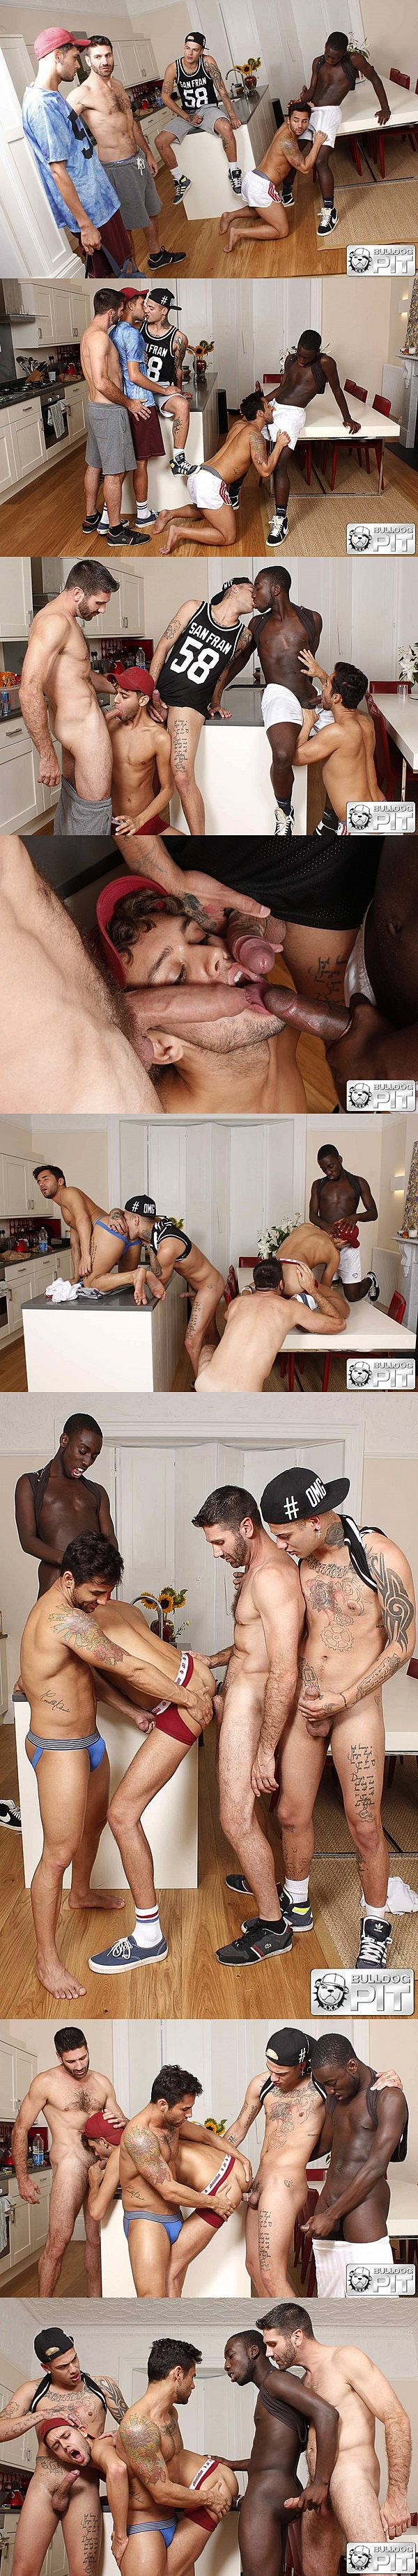 Bruno Bernal, Craig Daniel, Drew Kingston, Marco DuVaul & Mickey Taylor have a hot orgy in Ruined Orgy at Bulldogpit 02